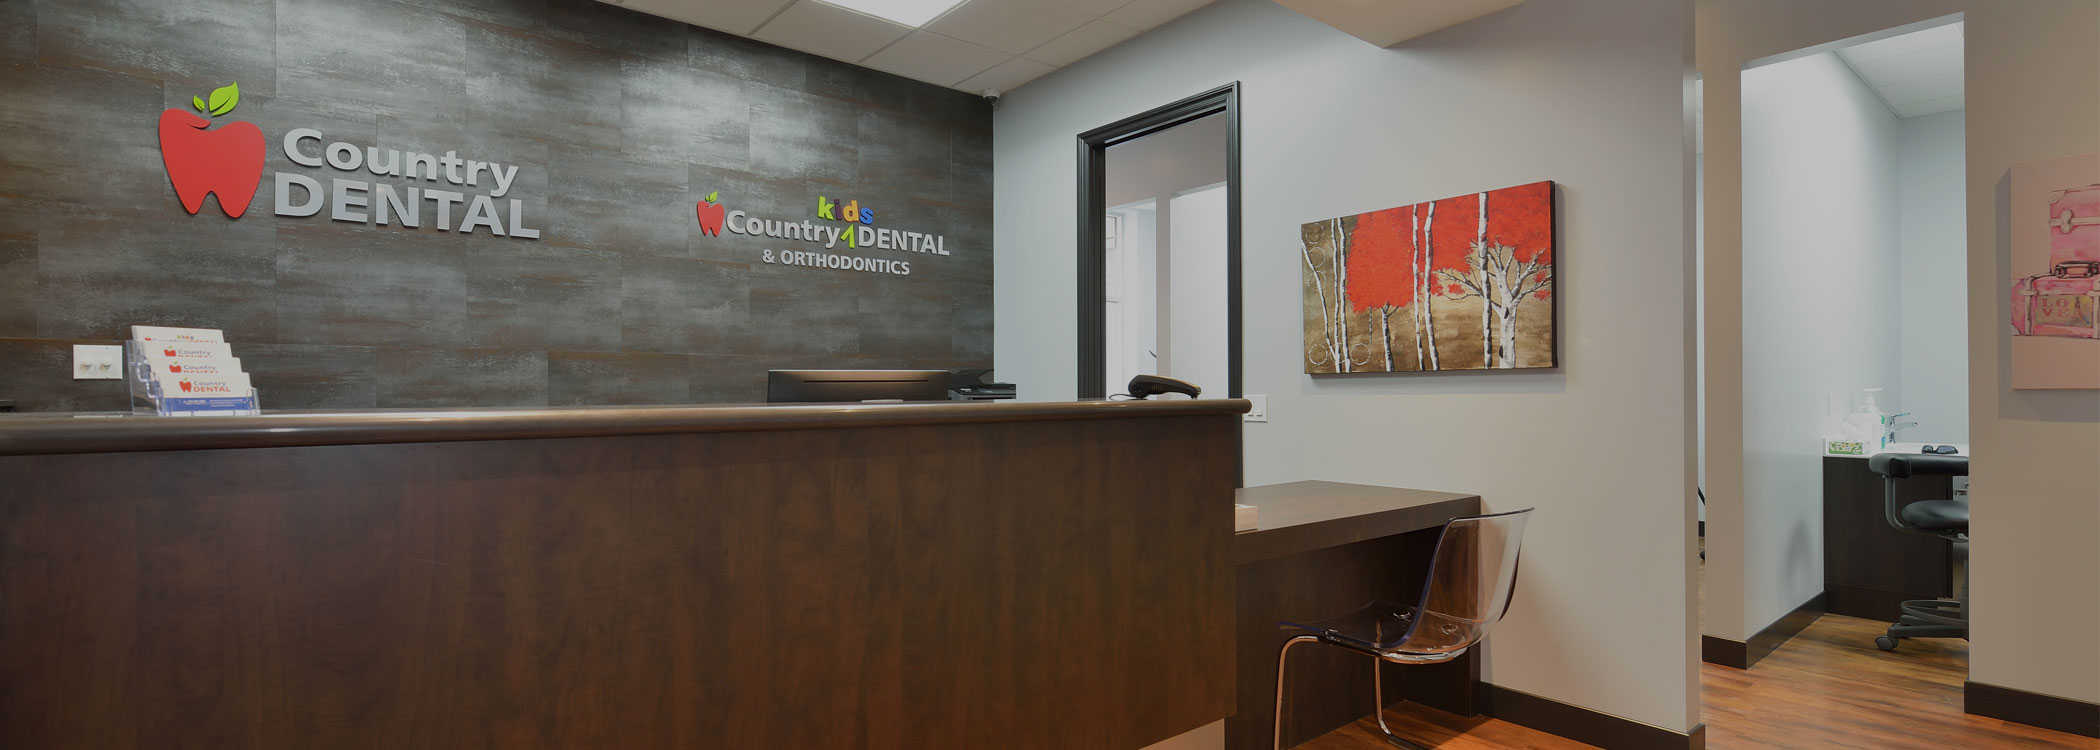 Fergus dental clinic reception - Country Dental Clinic